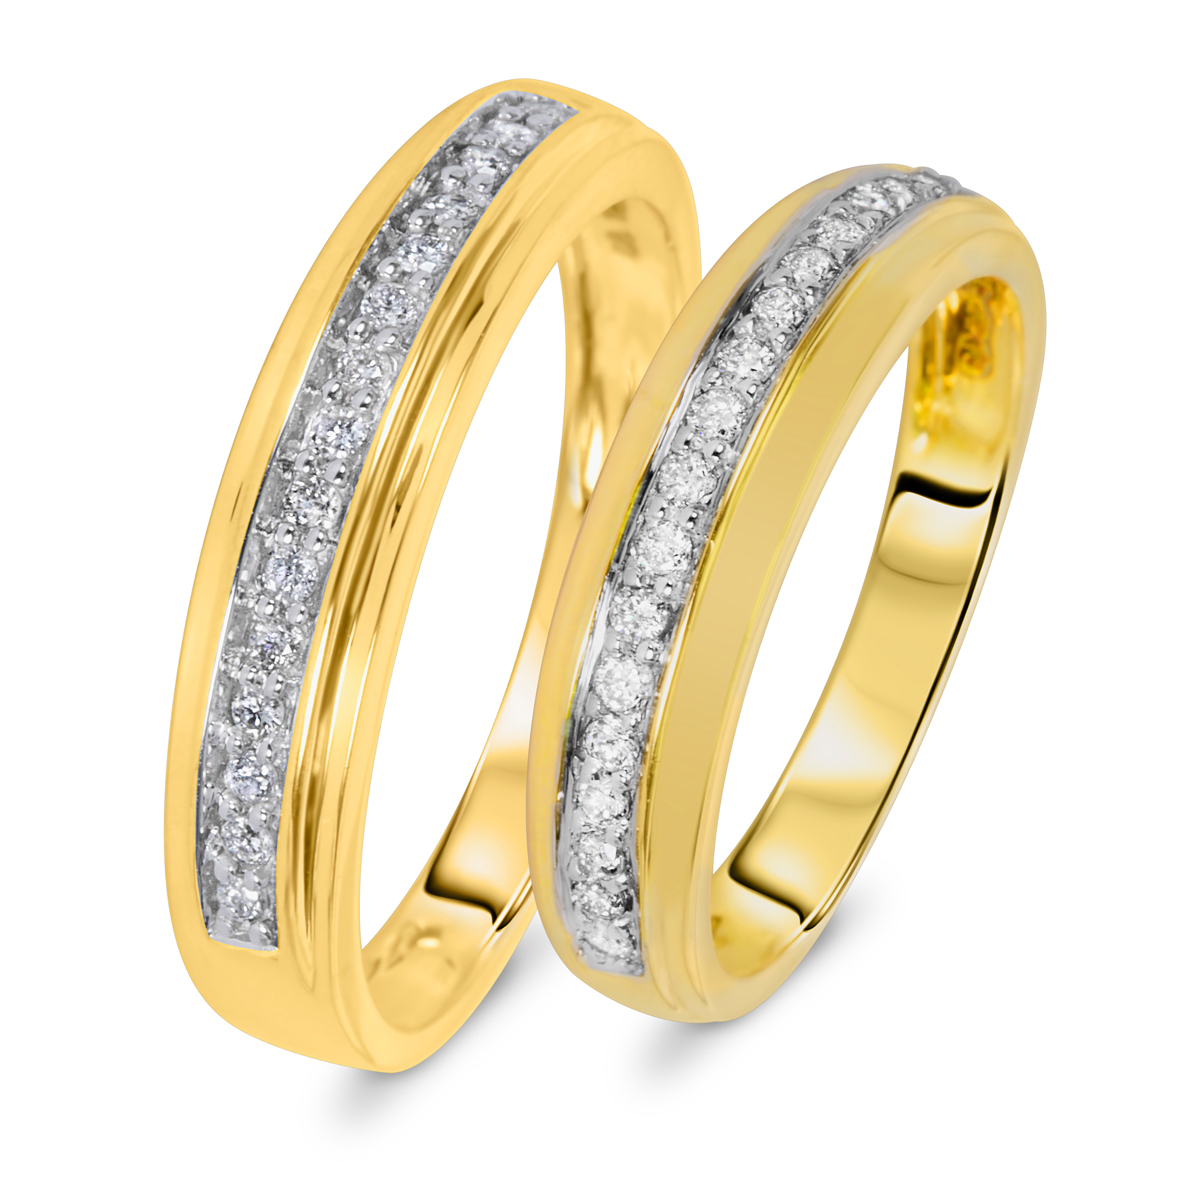 rings diamond set his emejing carat gold t w matching band white and wedding ring hers sets contemporary htm